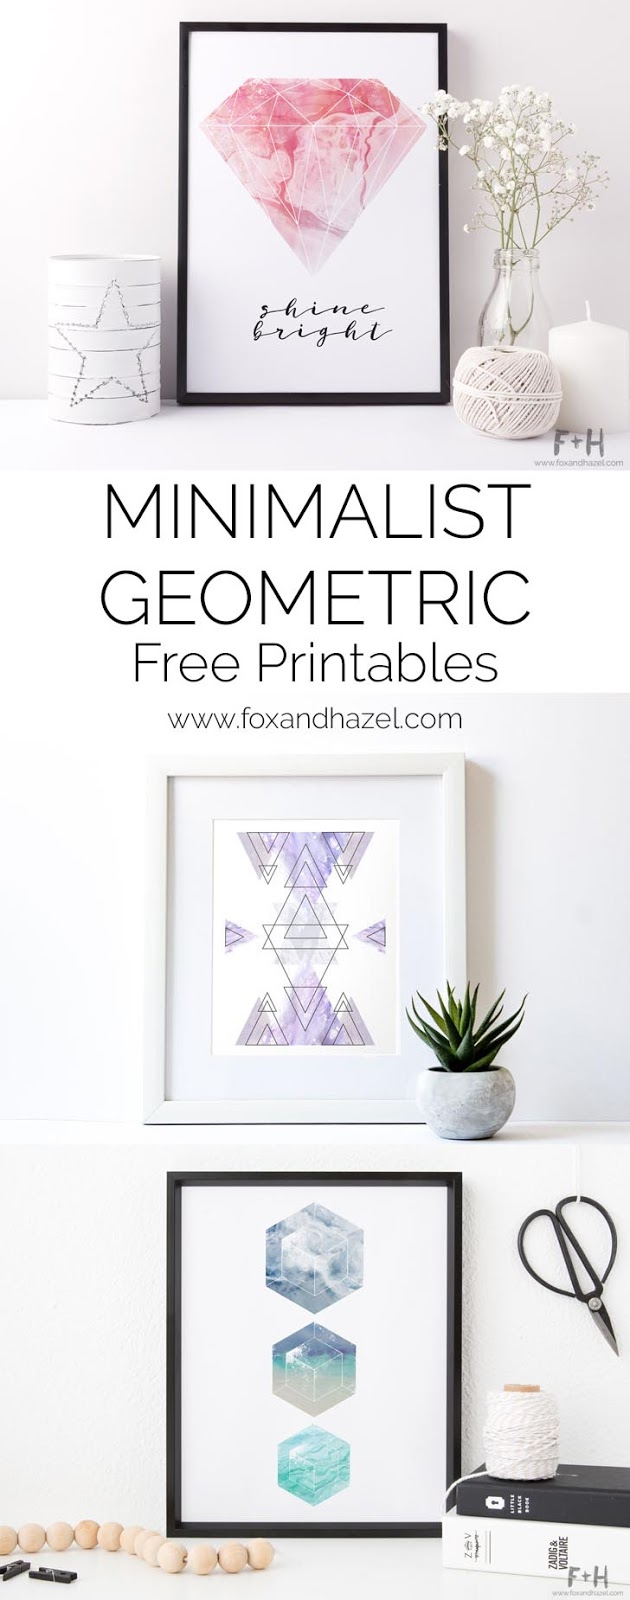 A Pinterest cover highlighting 3 minimalist geometric designs for wall decor